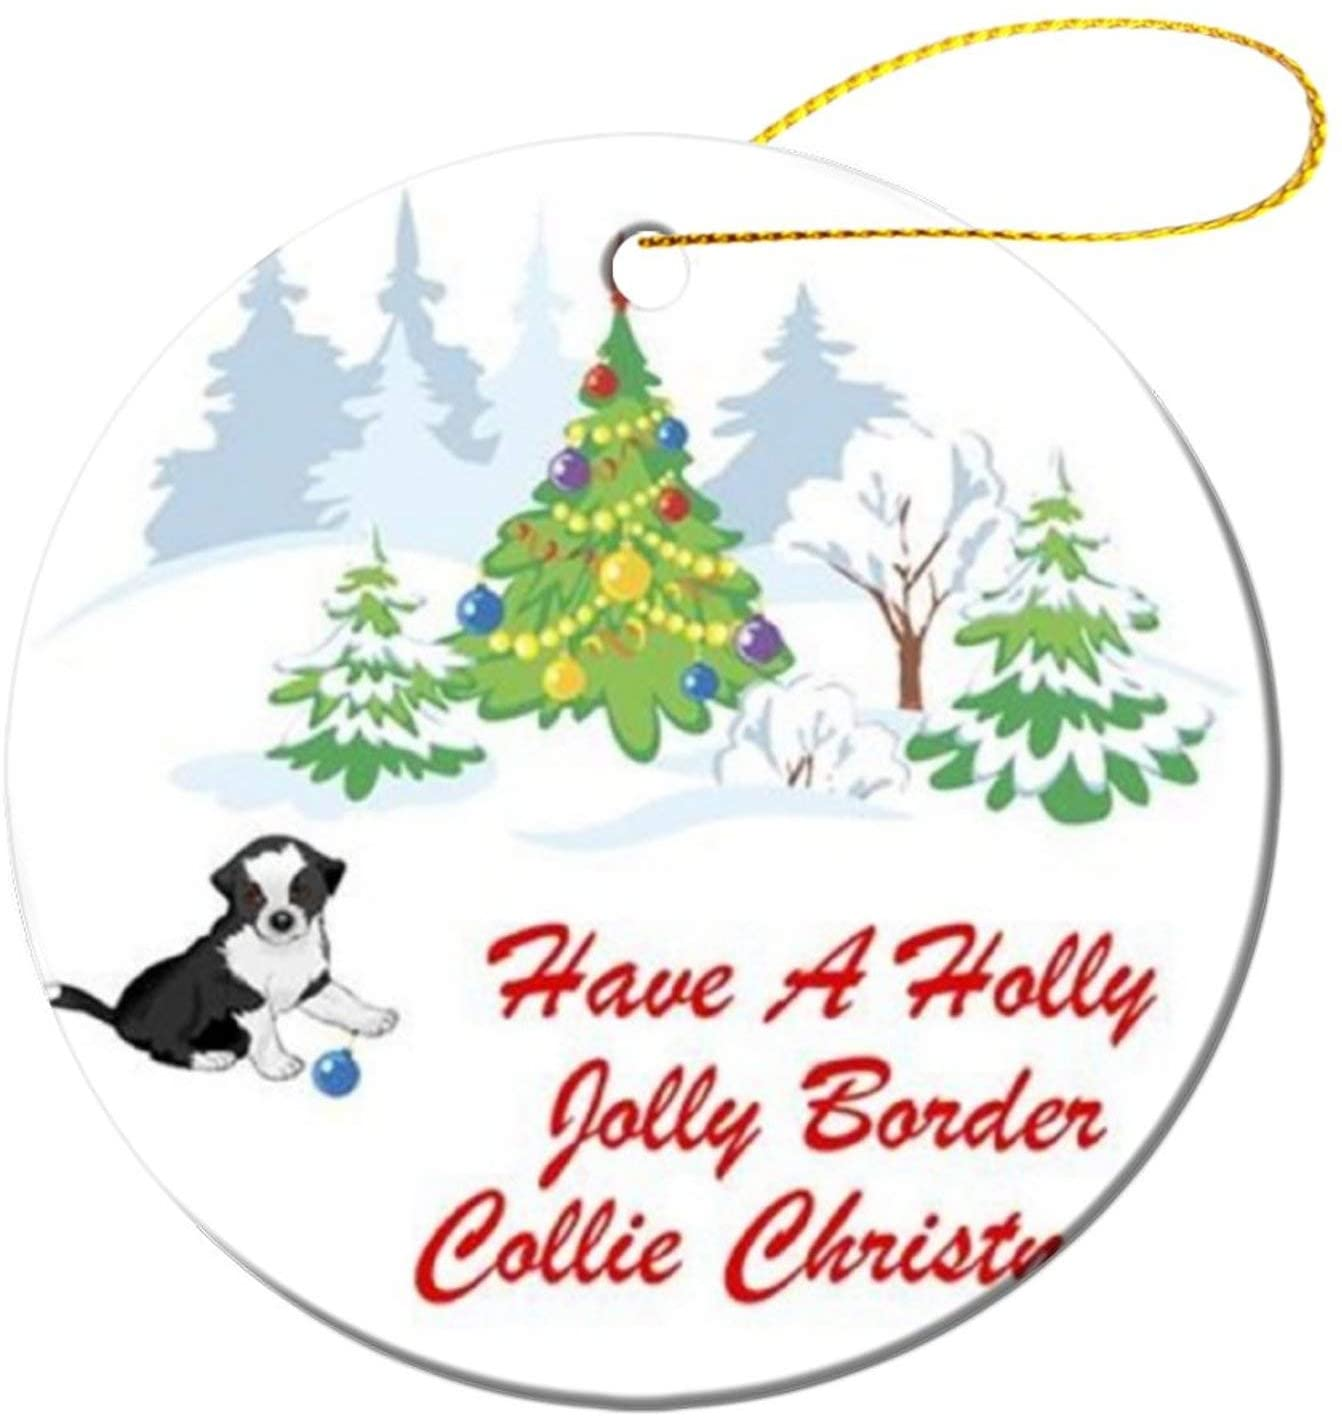 Border Collie Christmas Repeat5475 first christmas hand print ornament, Couples Wedding Present, Floral Wreath 3 Flat Ceramic Ornament with Gift Box